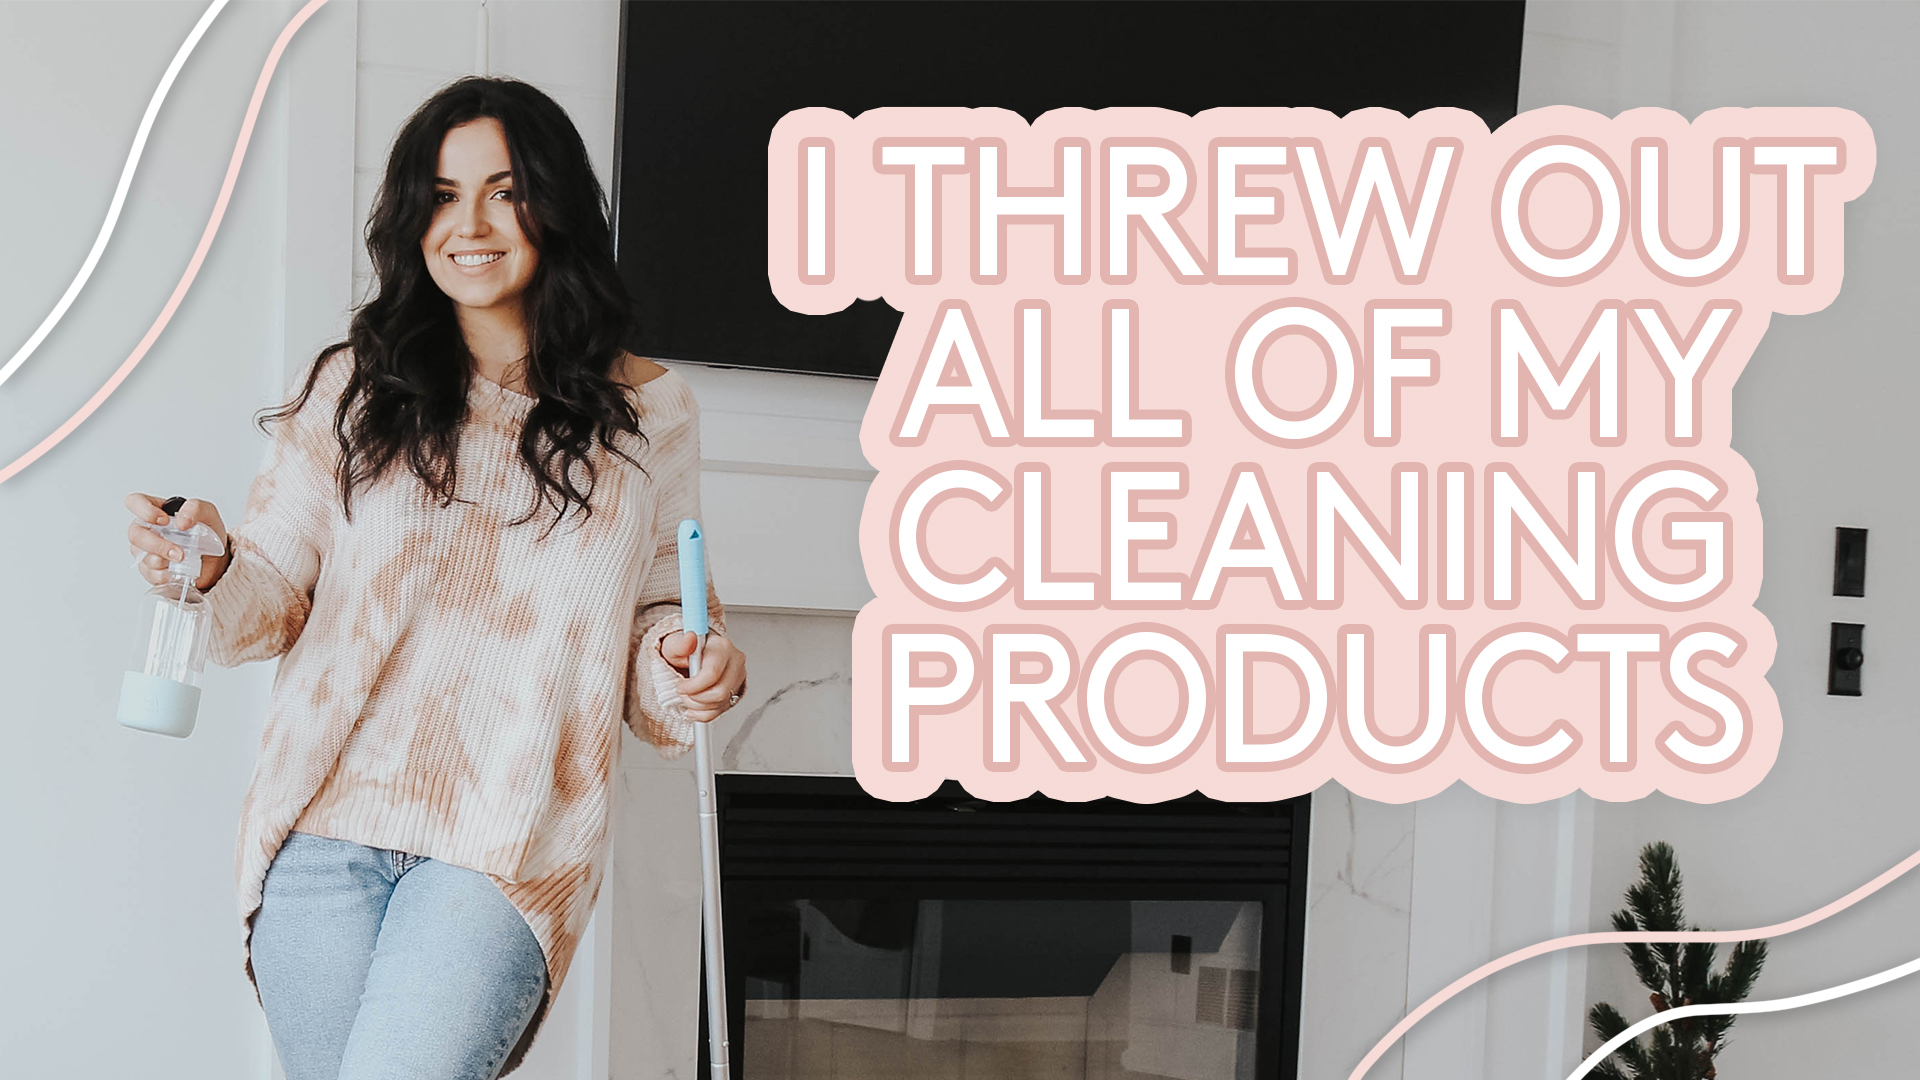 Host Haley Cairo: DIY cleaners